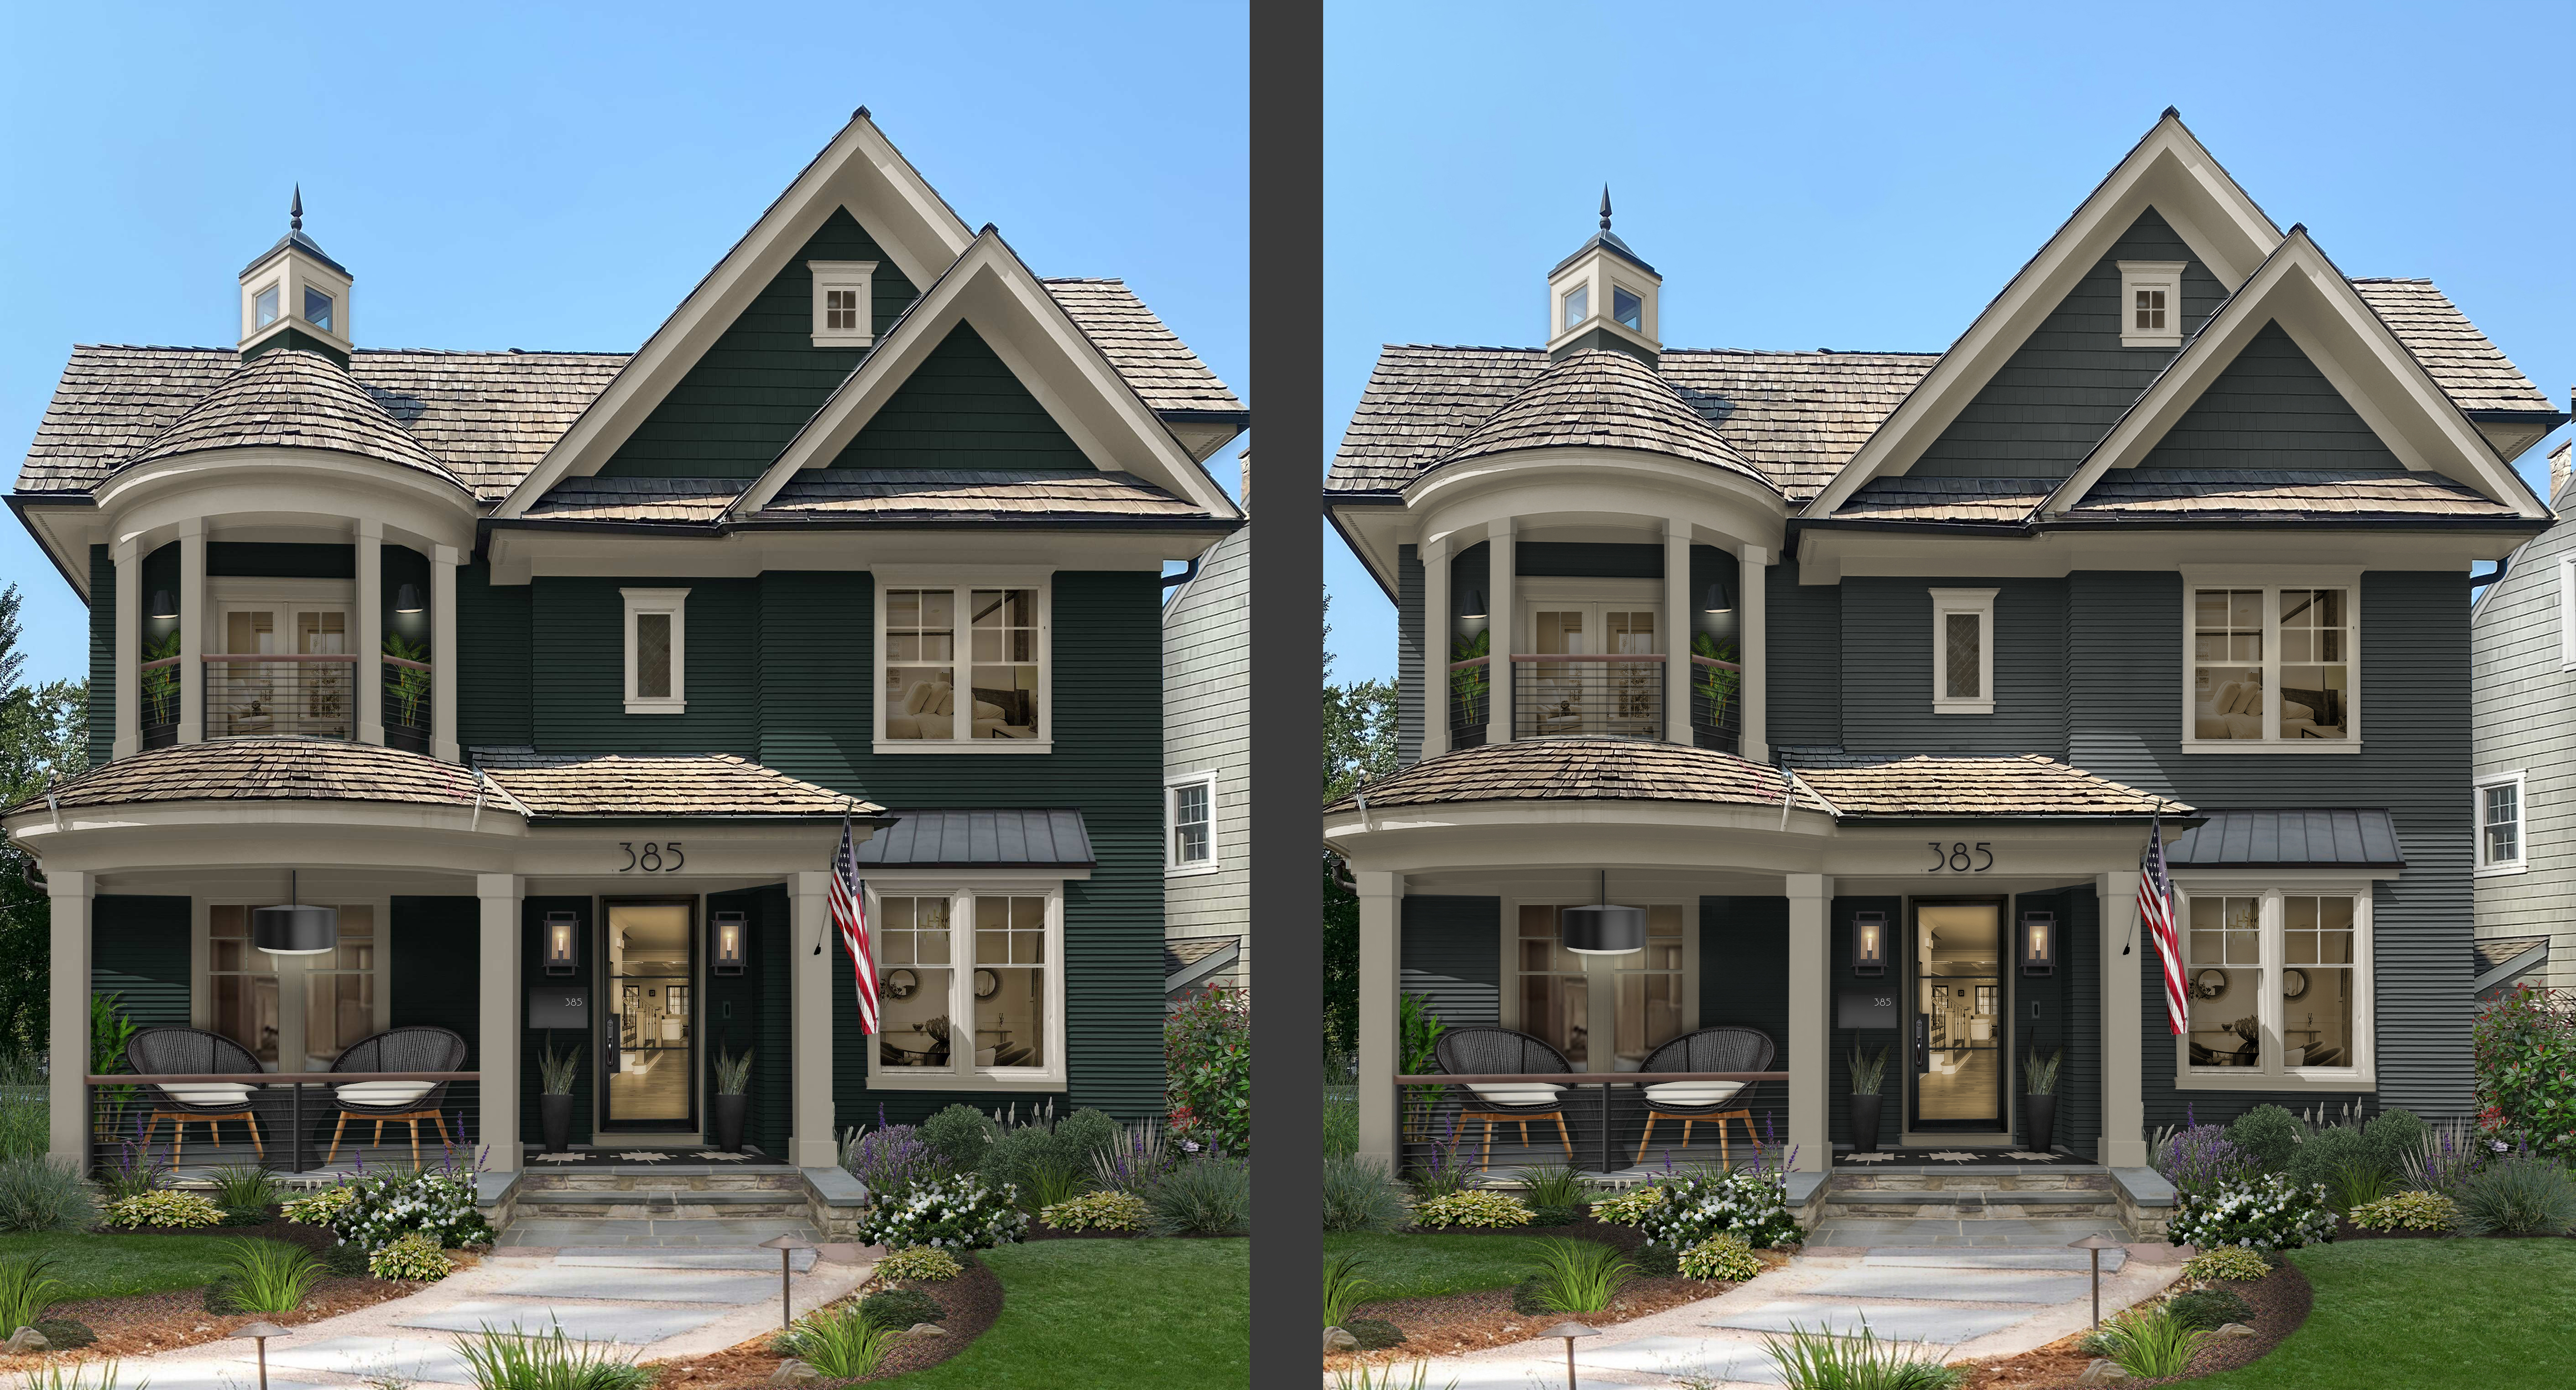 two side by side comparisons of a victorian three story home with a turret and large porch